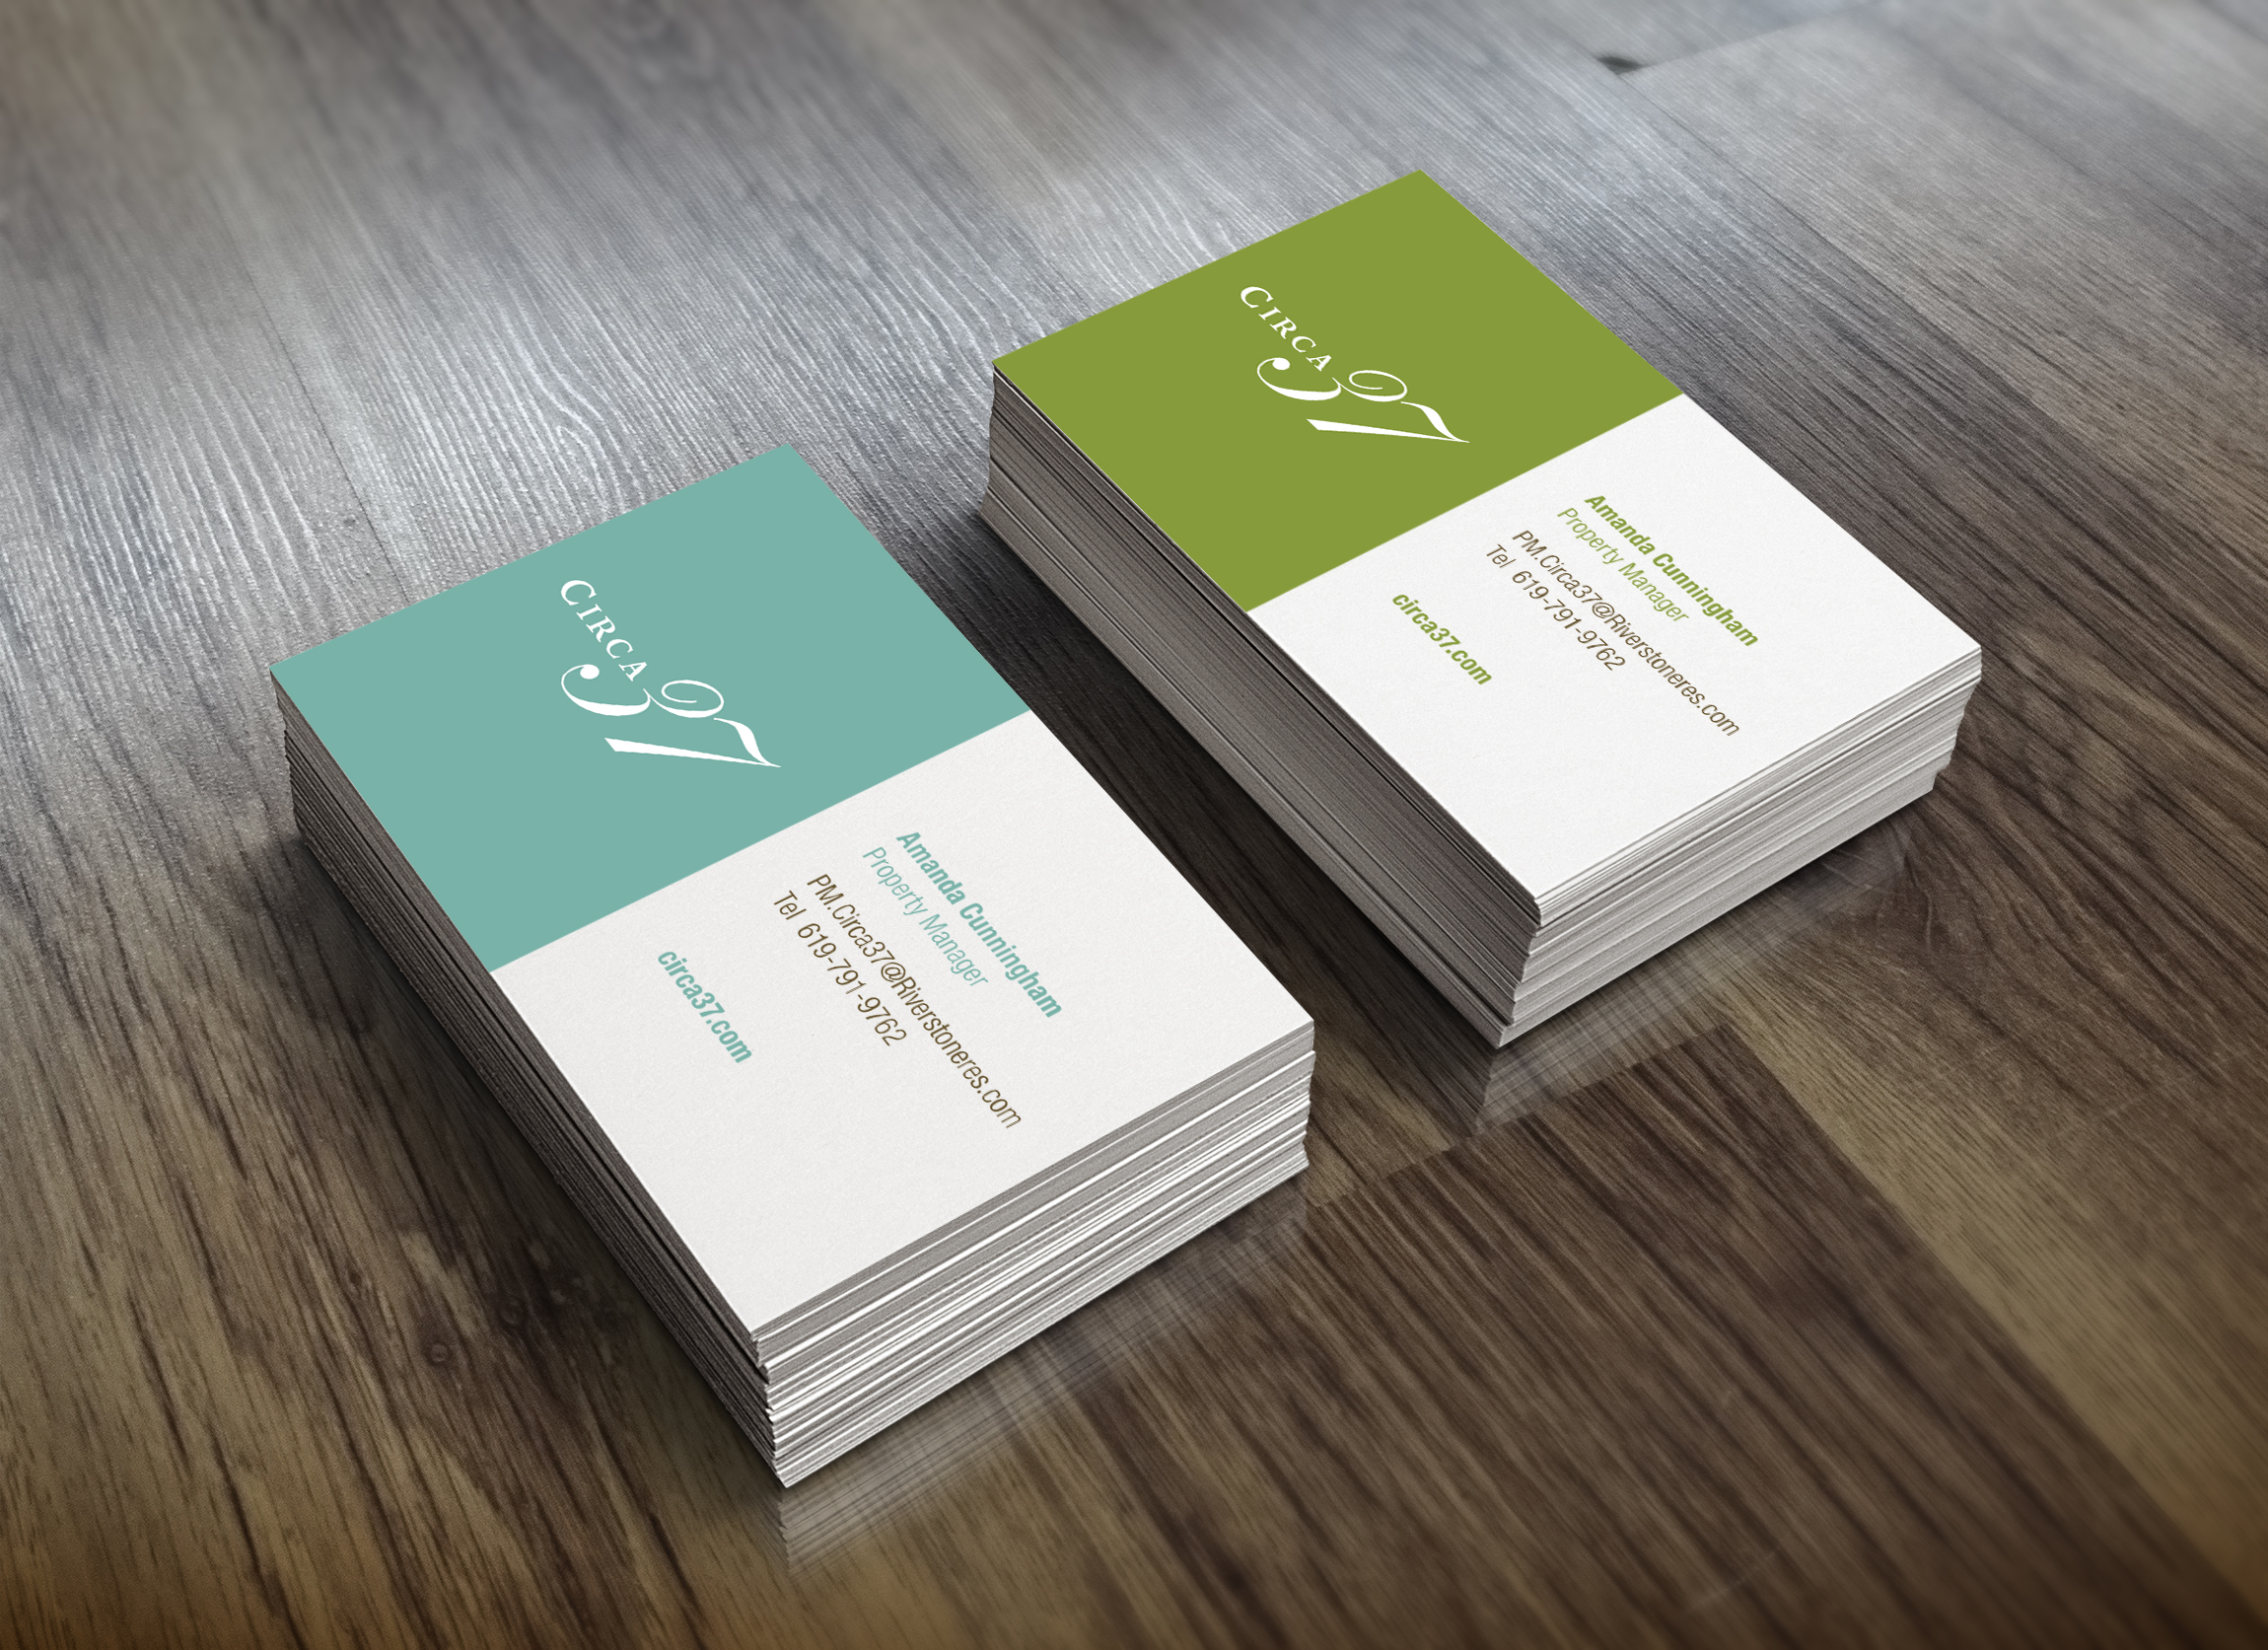 Circa37 Realistic Business Card Mock-Up.jpg